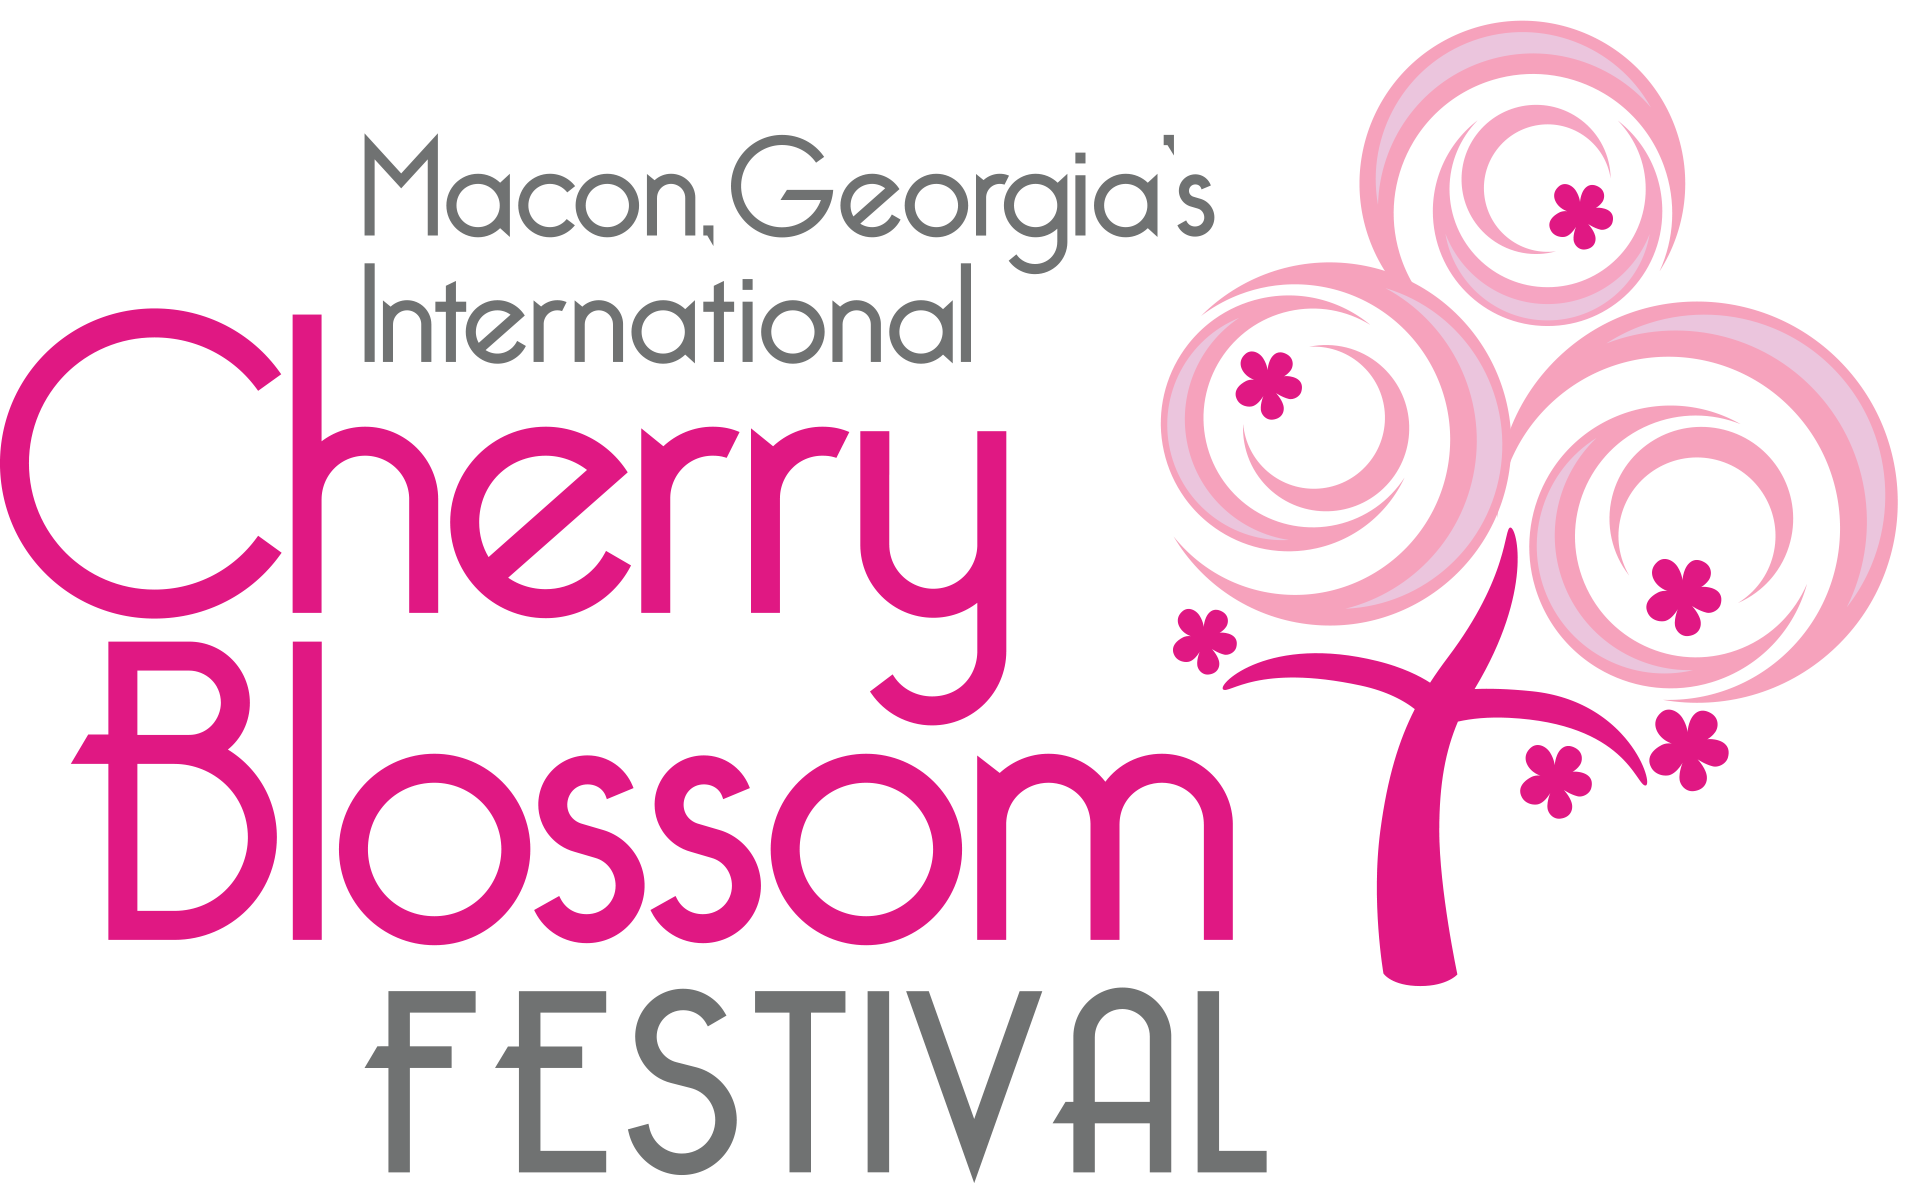 Macon, Georgia's International Cherry Blossom Festival